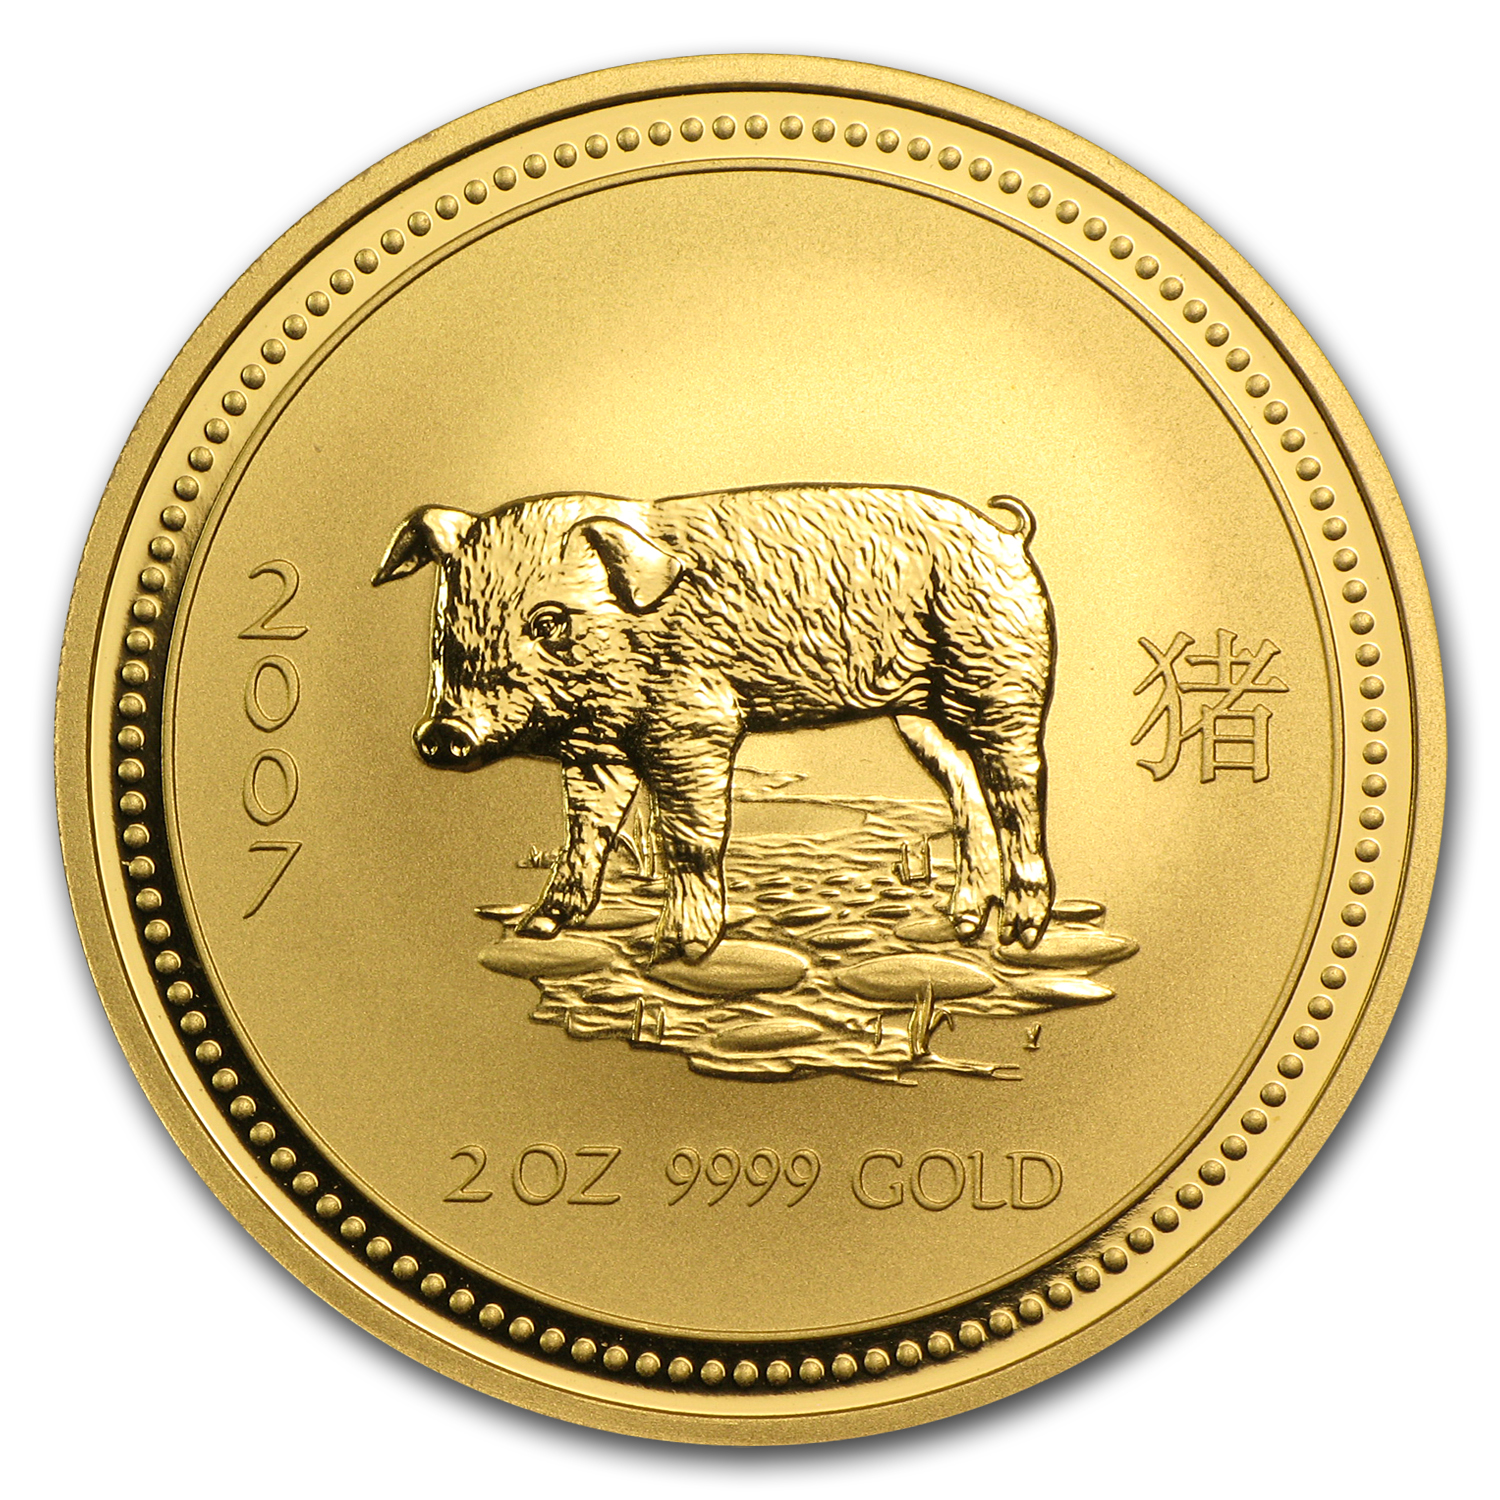 2007 2 oz Gold Year of the Pig Lunar Coin (Series I)